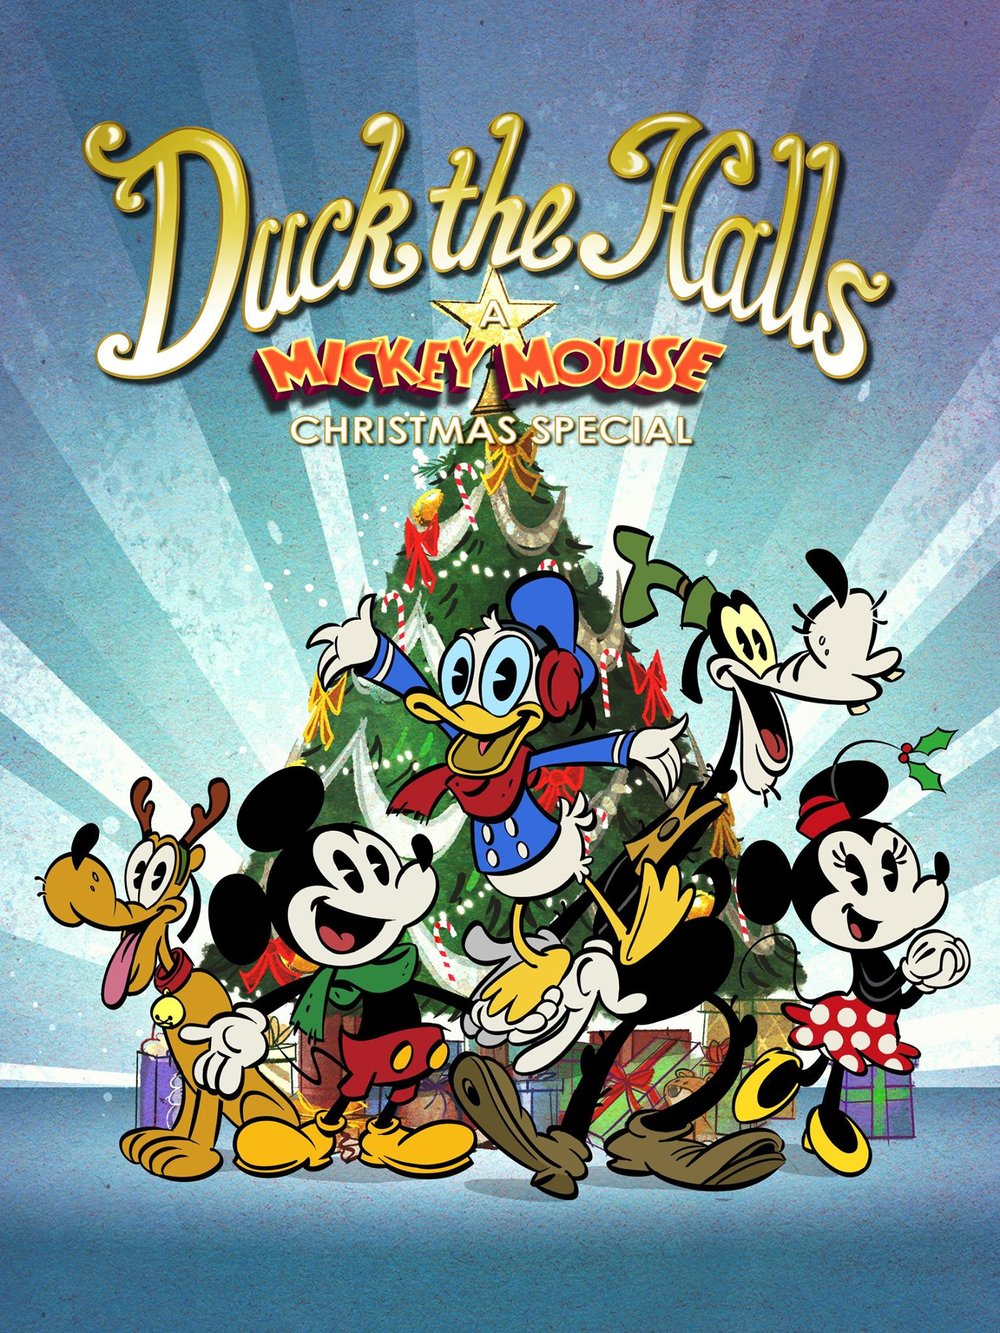 duck halls mickey mouse christmas special poster